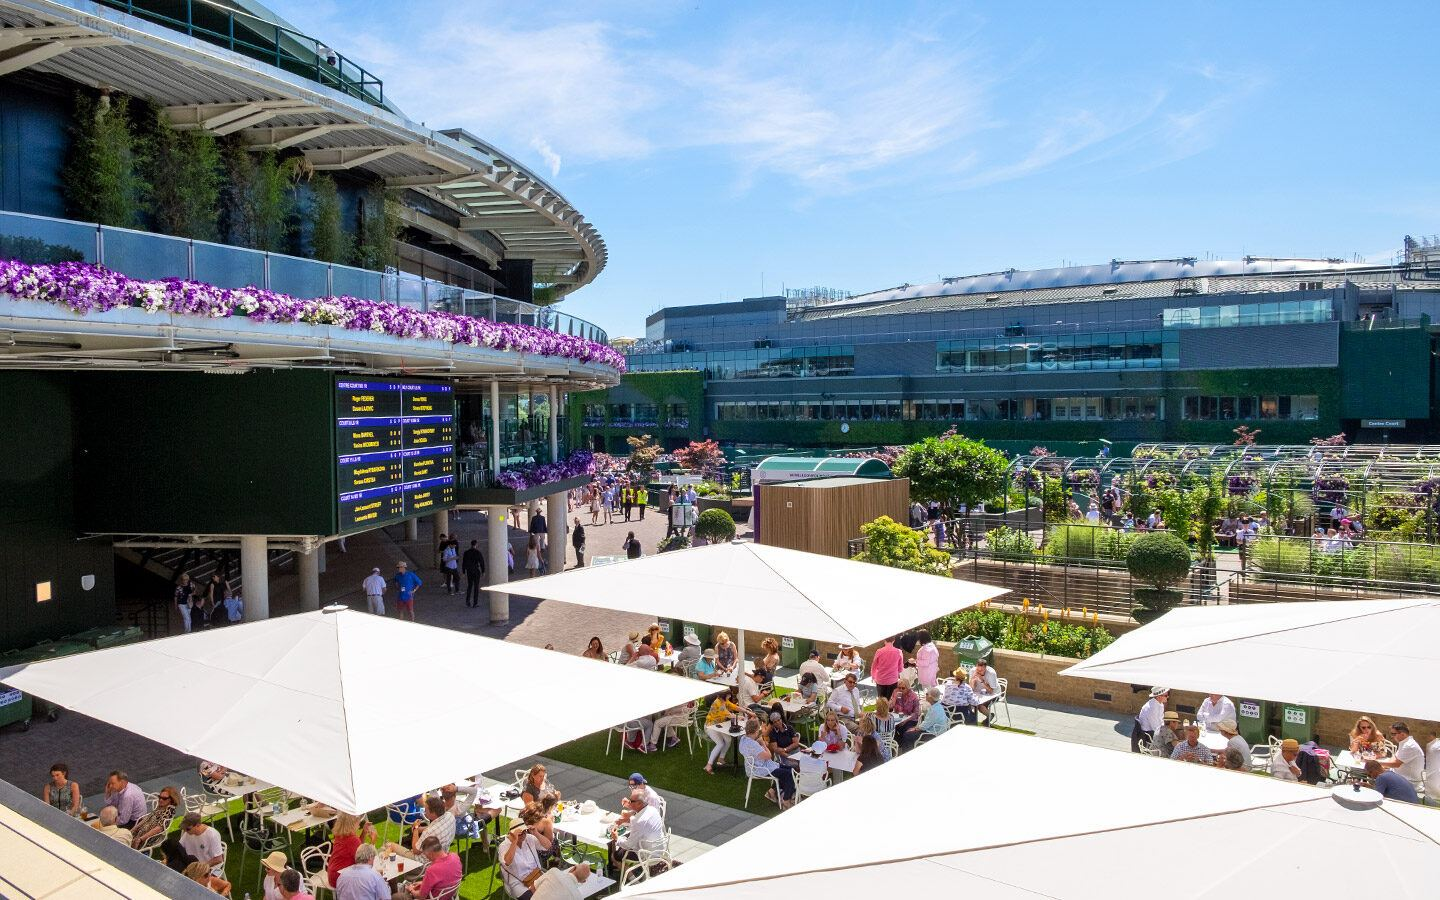 Looking out over the site of the Wimbledon Championships